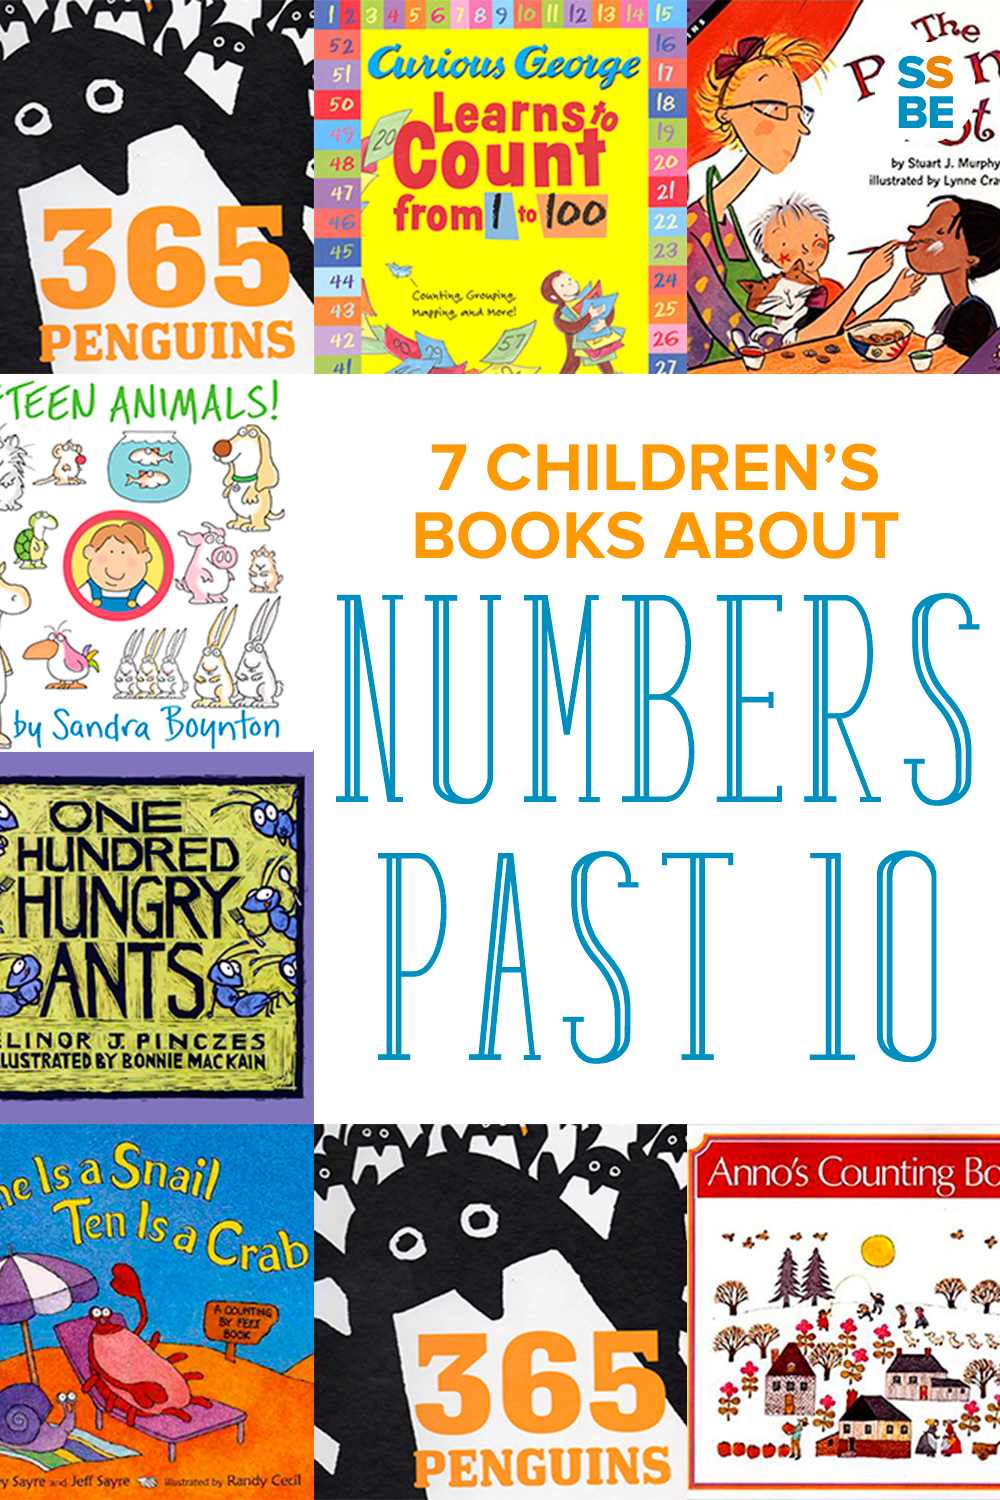 Is your child ready to count to number past 10? These fun children's books about numbers past 10 can help your child count to more than 10.